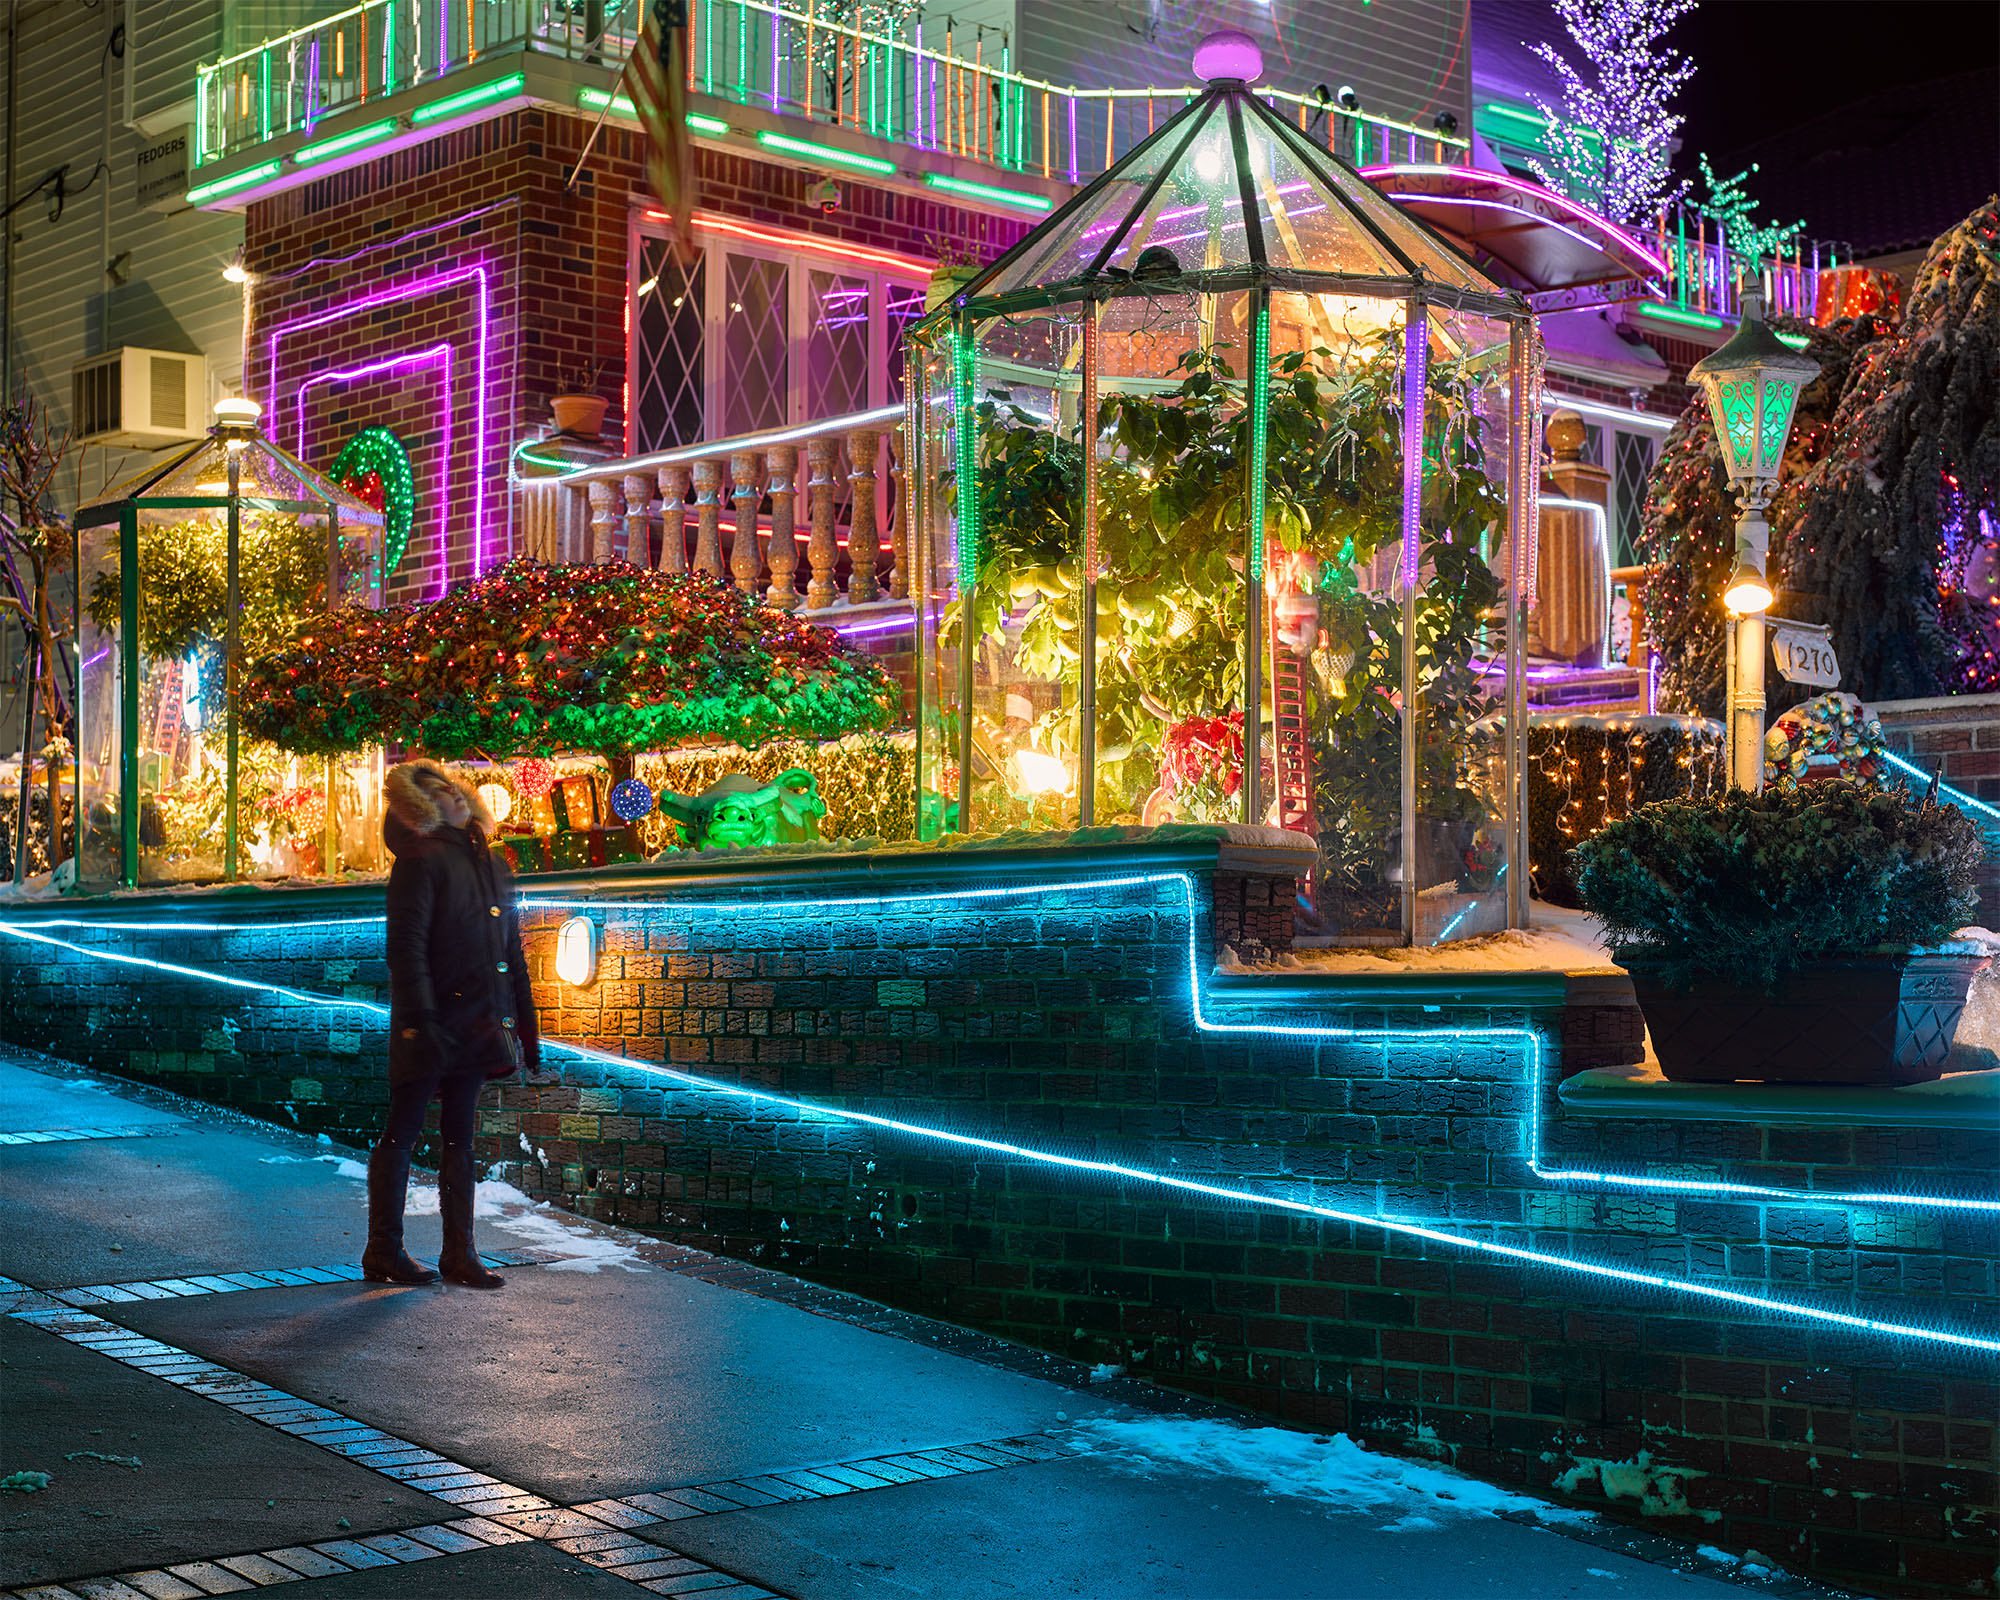 Dyker heights christmas lights photos of nycs dazzling holiday bus tours are sold out you can always head there yourself the best displays can be seen from 11th to 13th avenues between 83rd and 86th streets solutioingenieria Choice Image